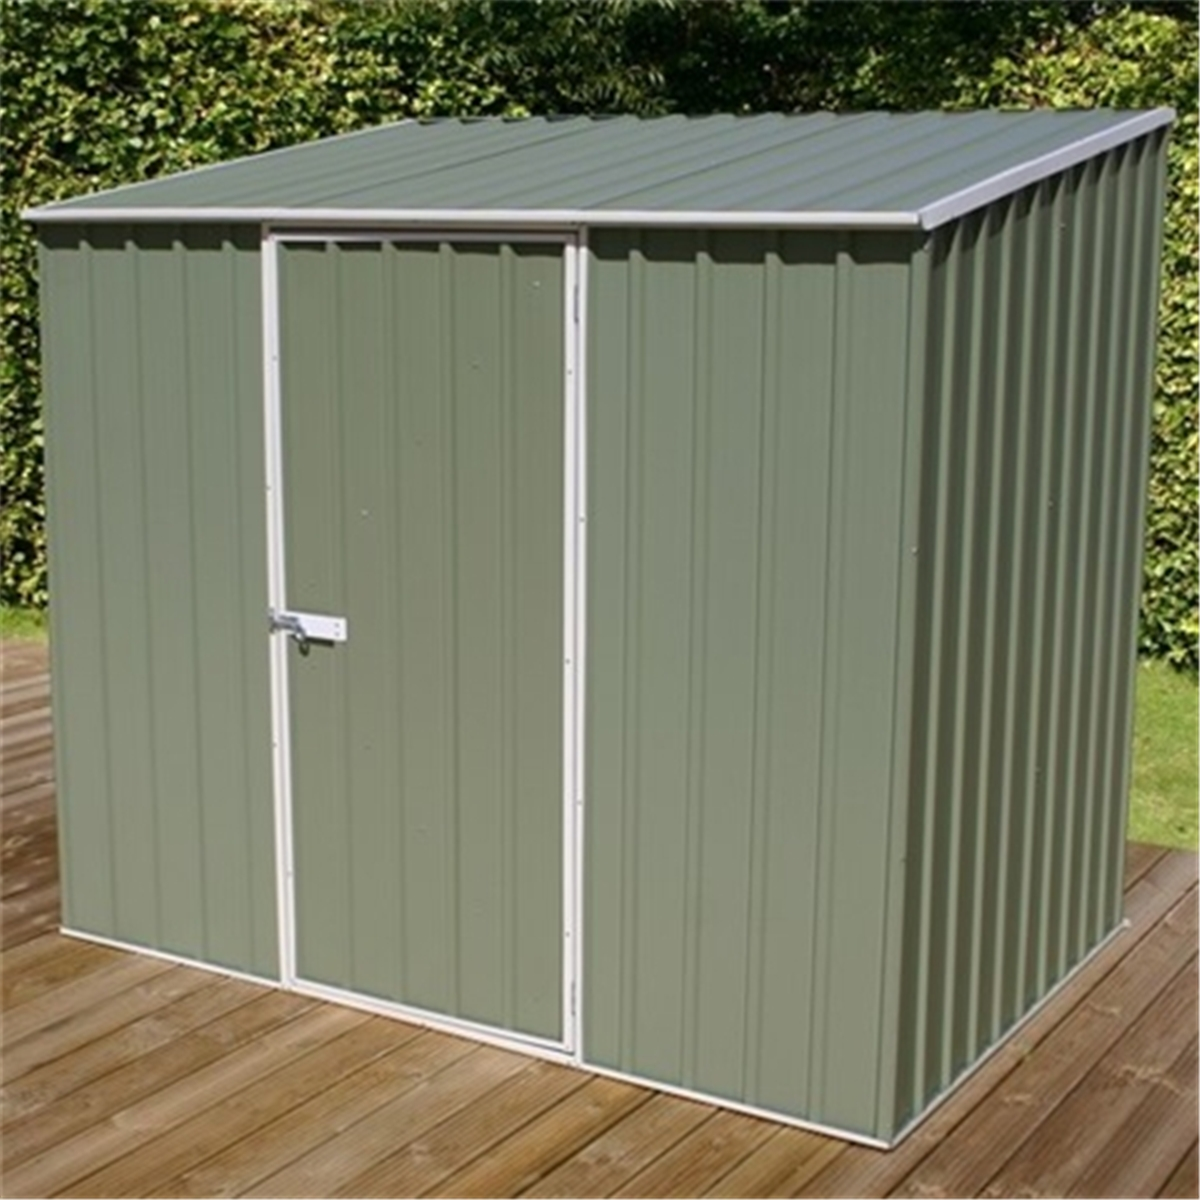 garden sheds for sale on gumtree northern ireland garden xcyyxh com - Garden Sheds Gumtree